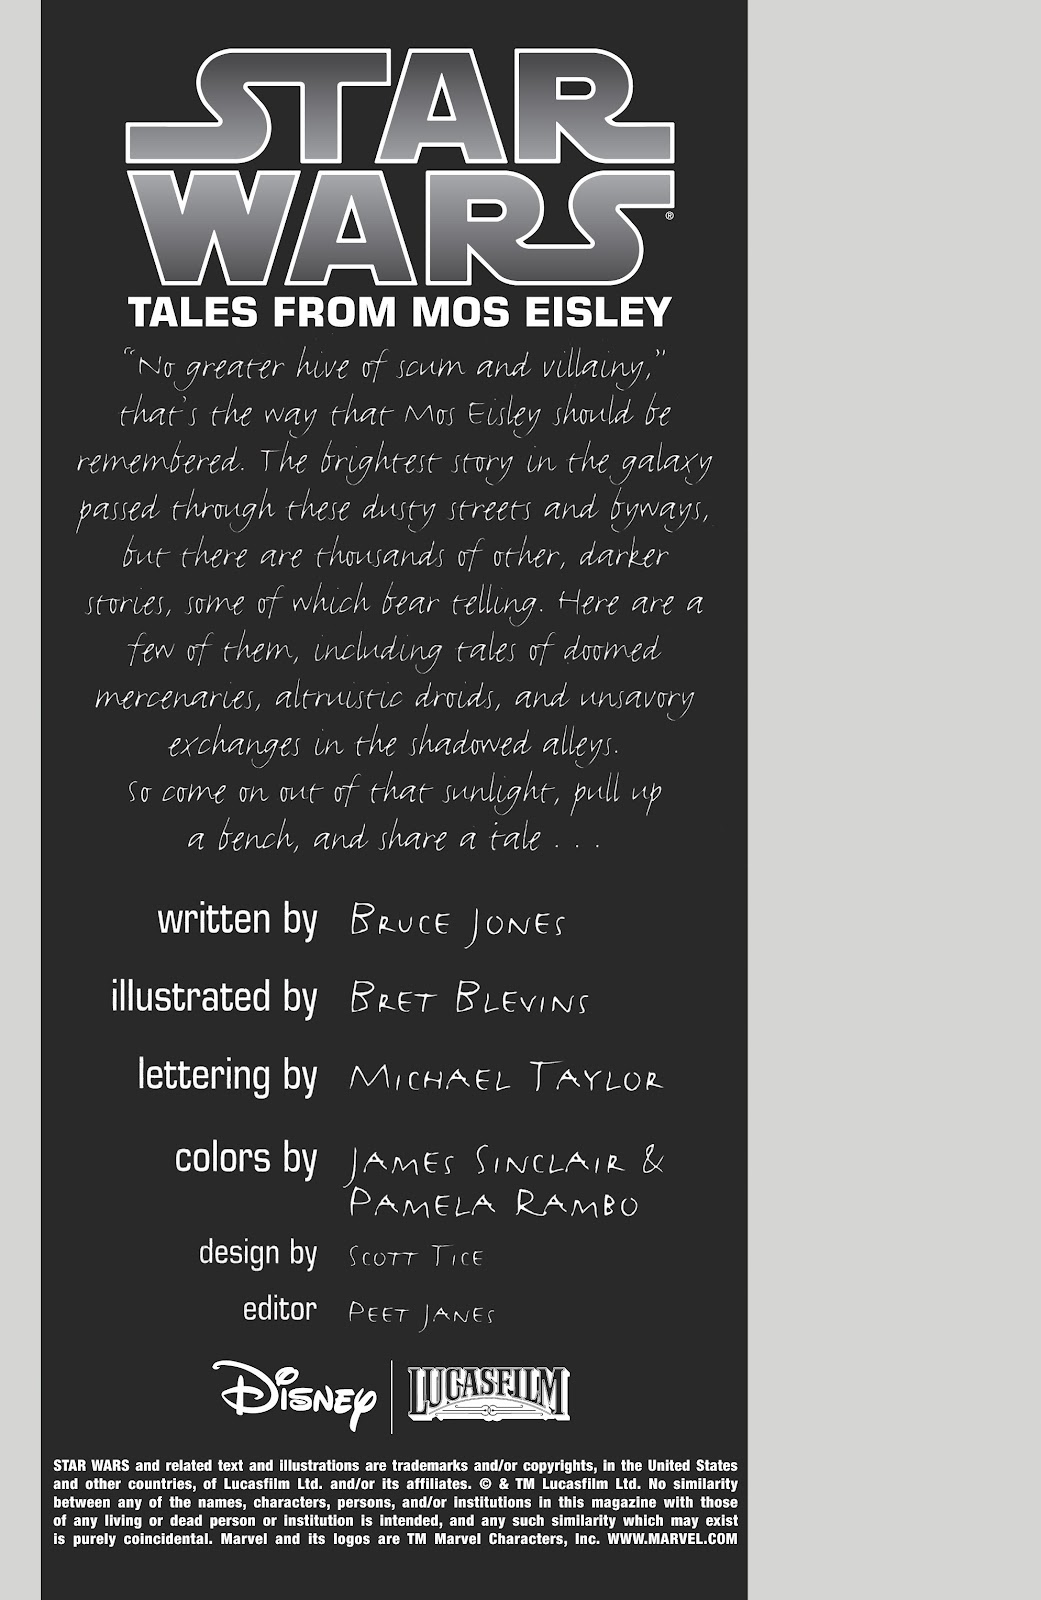 Read online Star Wars: Tales from Mos Eisley comic -  Issue # Full - 2